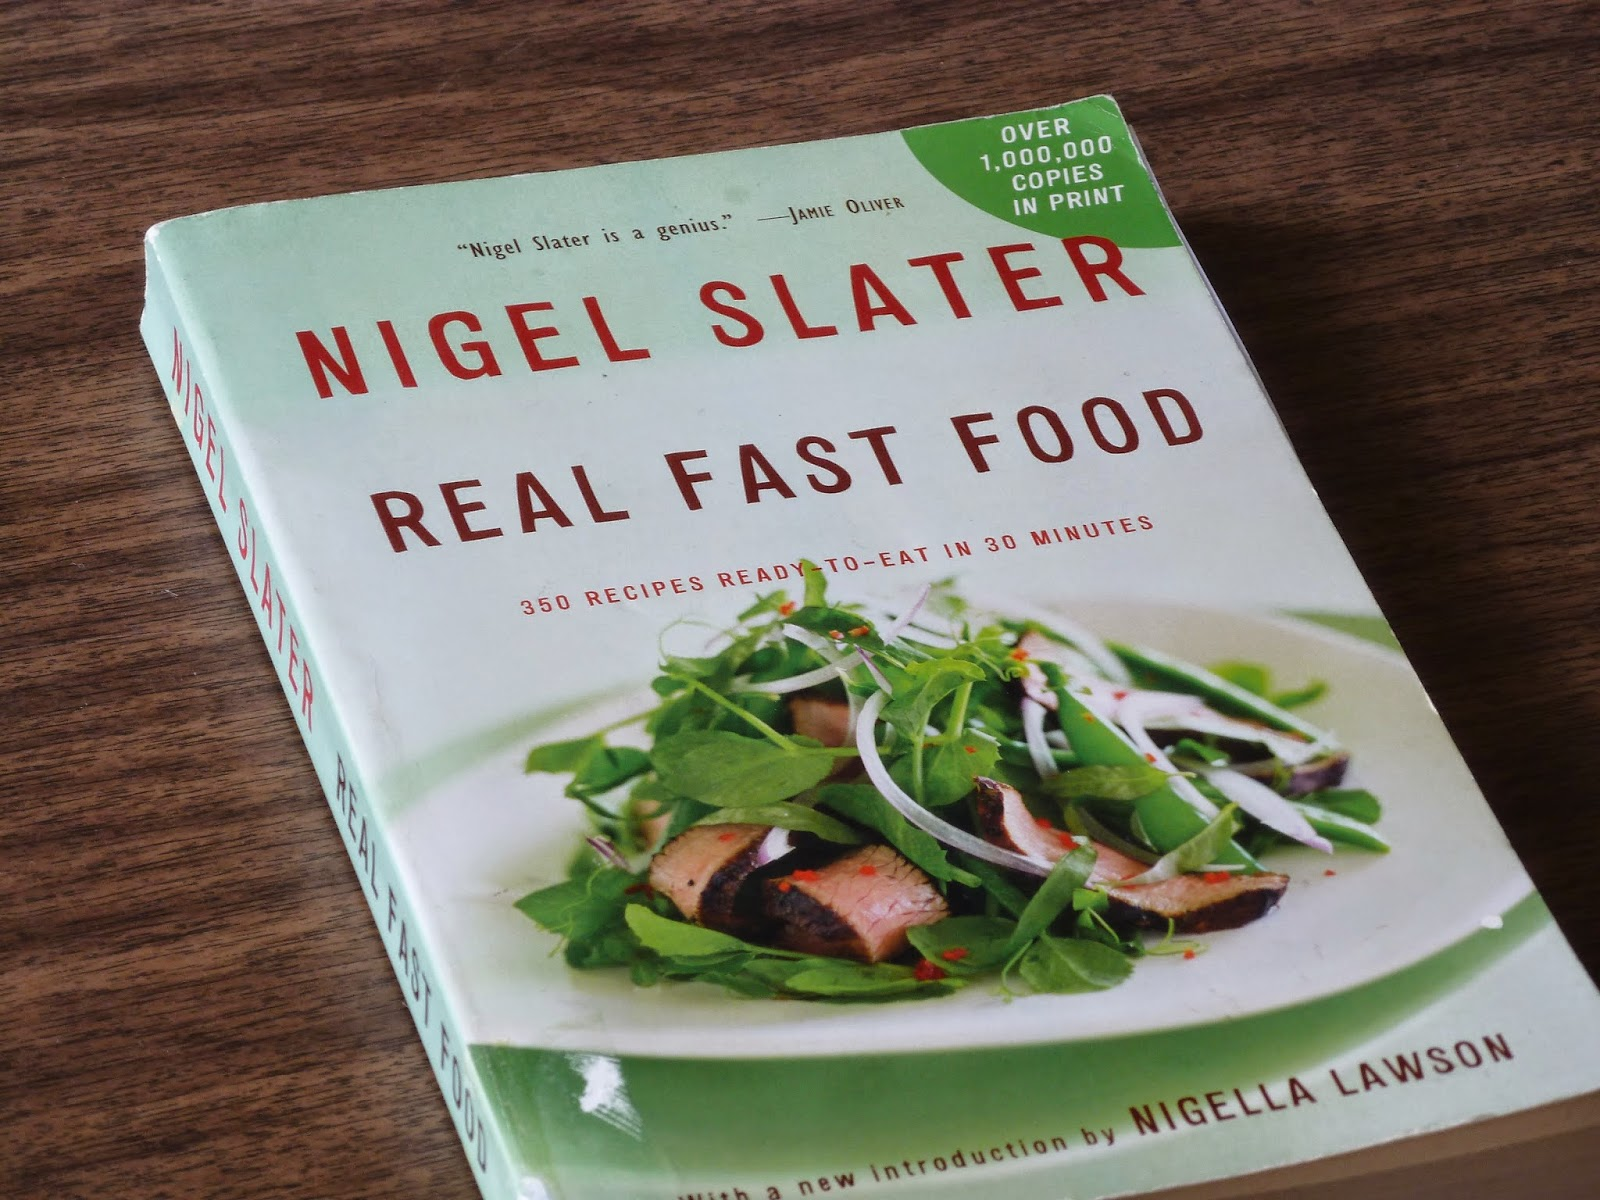 "Nigel Slater's Real Fast Food, Very few food writers are as thrilling and skilled as Nigel Slater.  I know I've mentioned him a number of times on here, but he's too good to go unmentioned this spring.  I'm getting sick of the same old things I've been cooking and looking forward to a new season and new varieties of fresh foods at the market.  The way Nigel Slater talks about making food...the passion and knowledge behind every ingredient and the willingness to ""wing-it"" now and then with whatever is in the pantry makes him my culinary hero.  These aren't just recipes, but a whole conversation about food, food choices, patience and nourishment.  If you've never read Real Fast Food or you need inspiration to cook good, real, healthy food for yourself or others, pick this up."